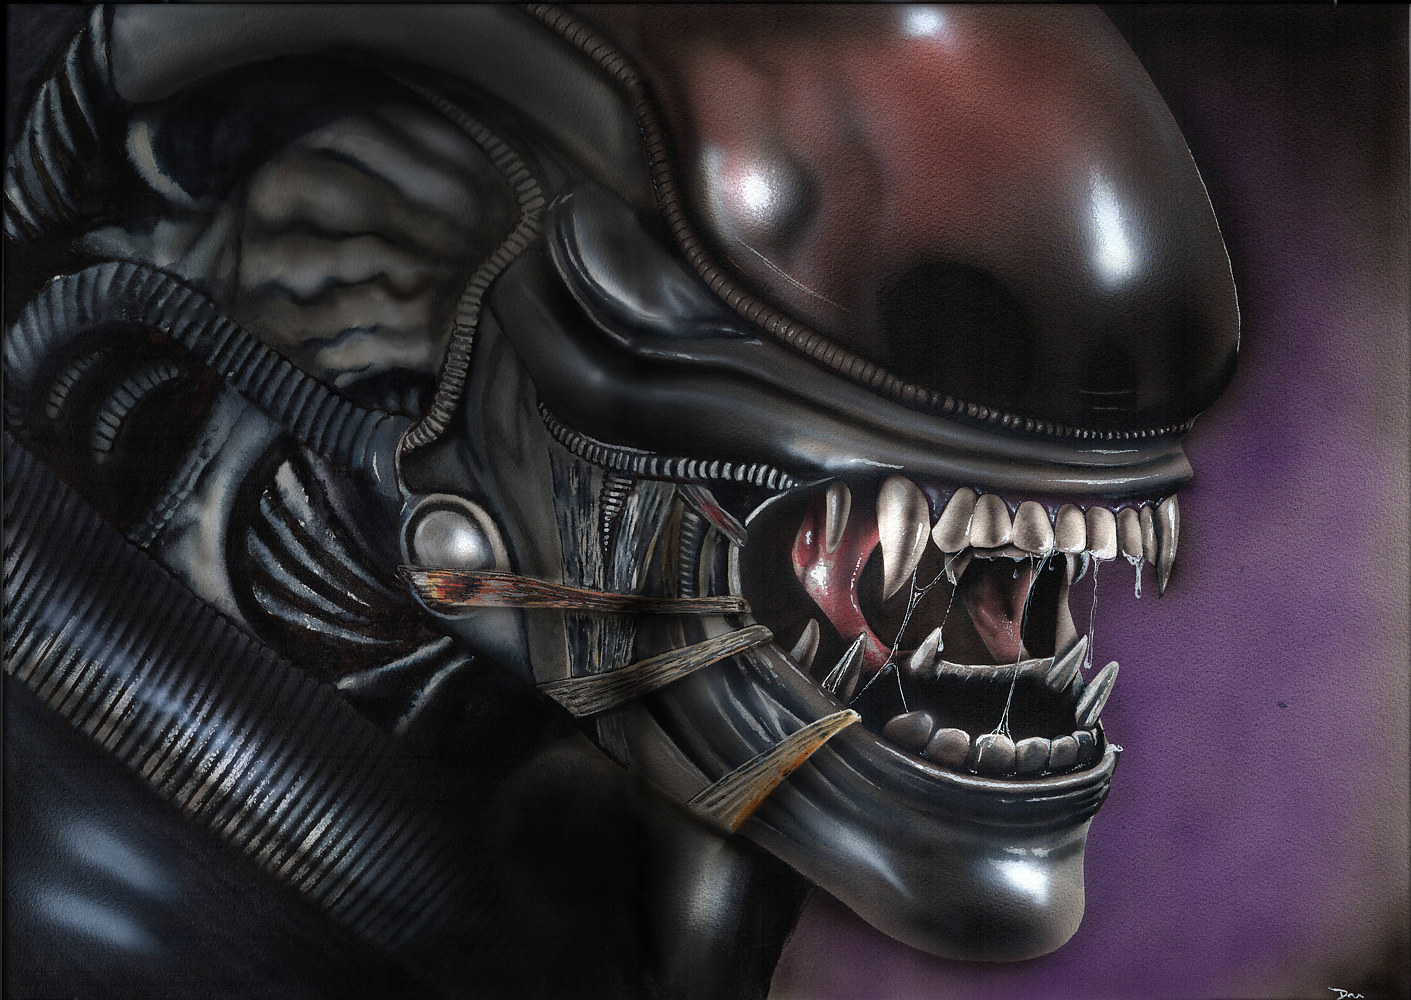 Mixed-media artwork Alien by Darren Hurst